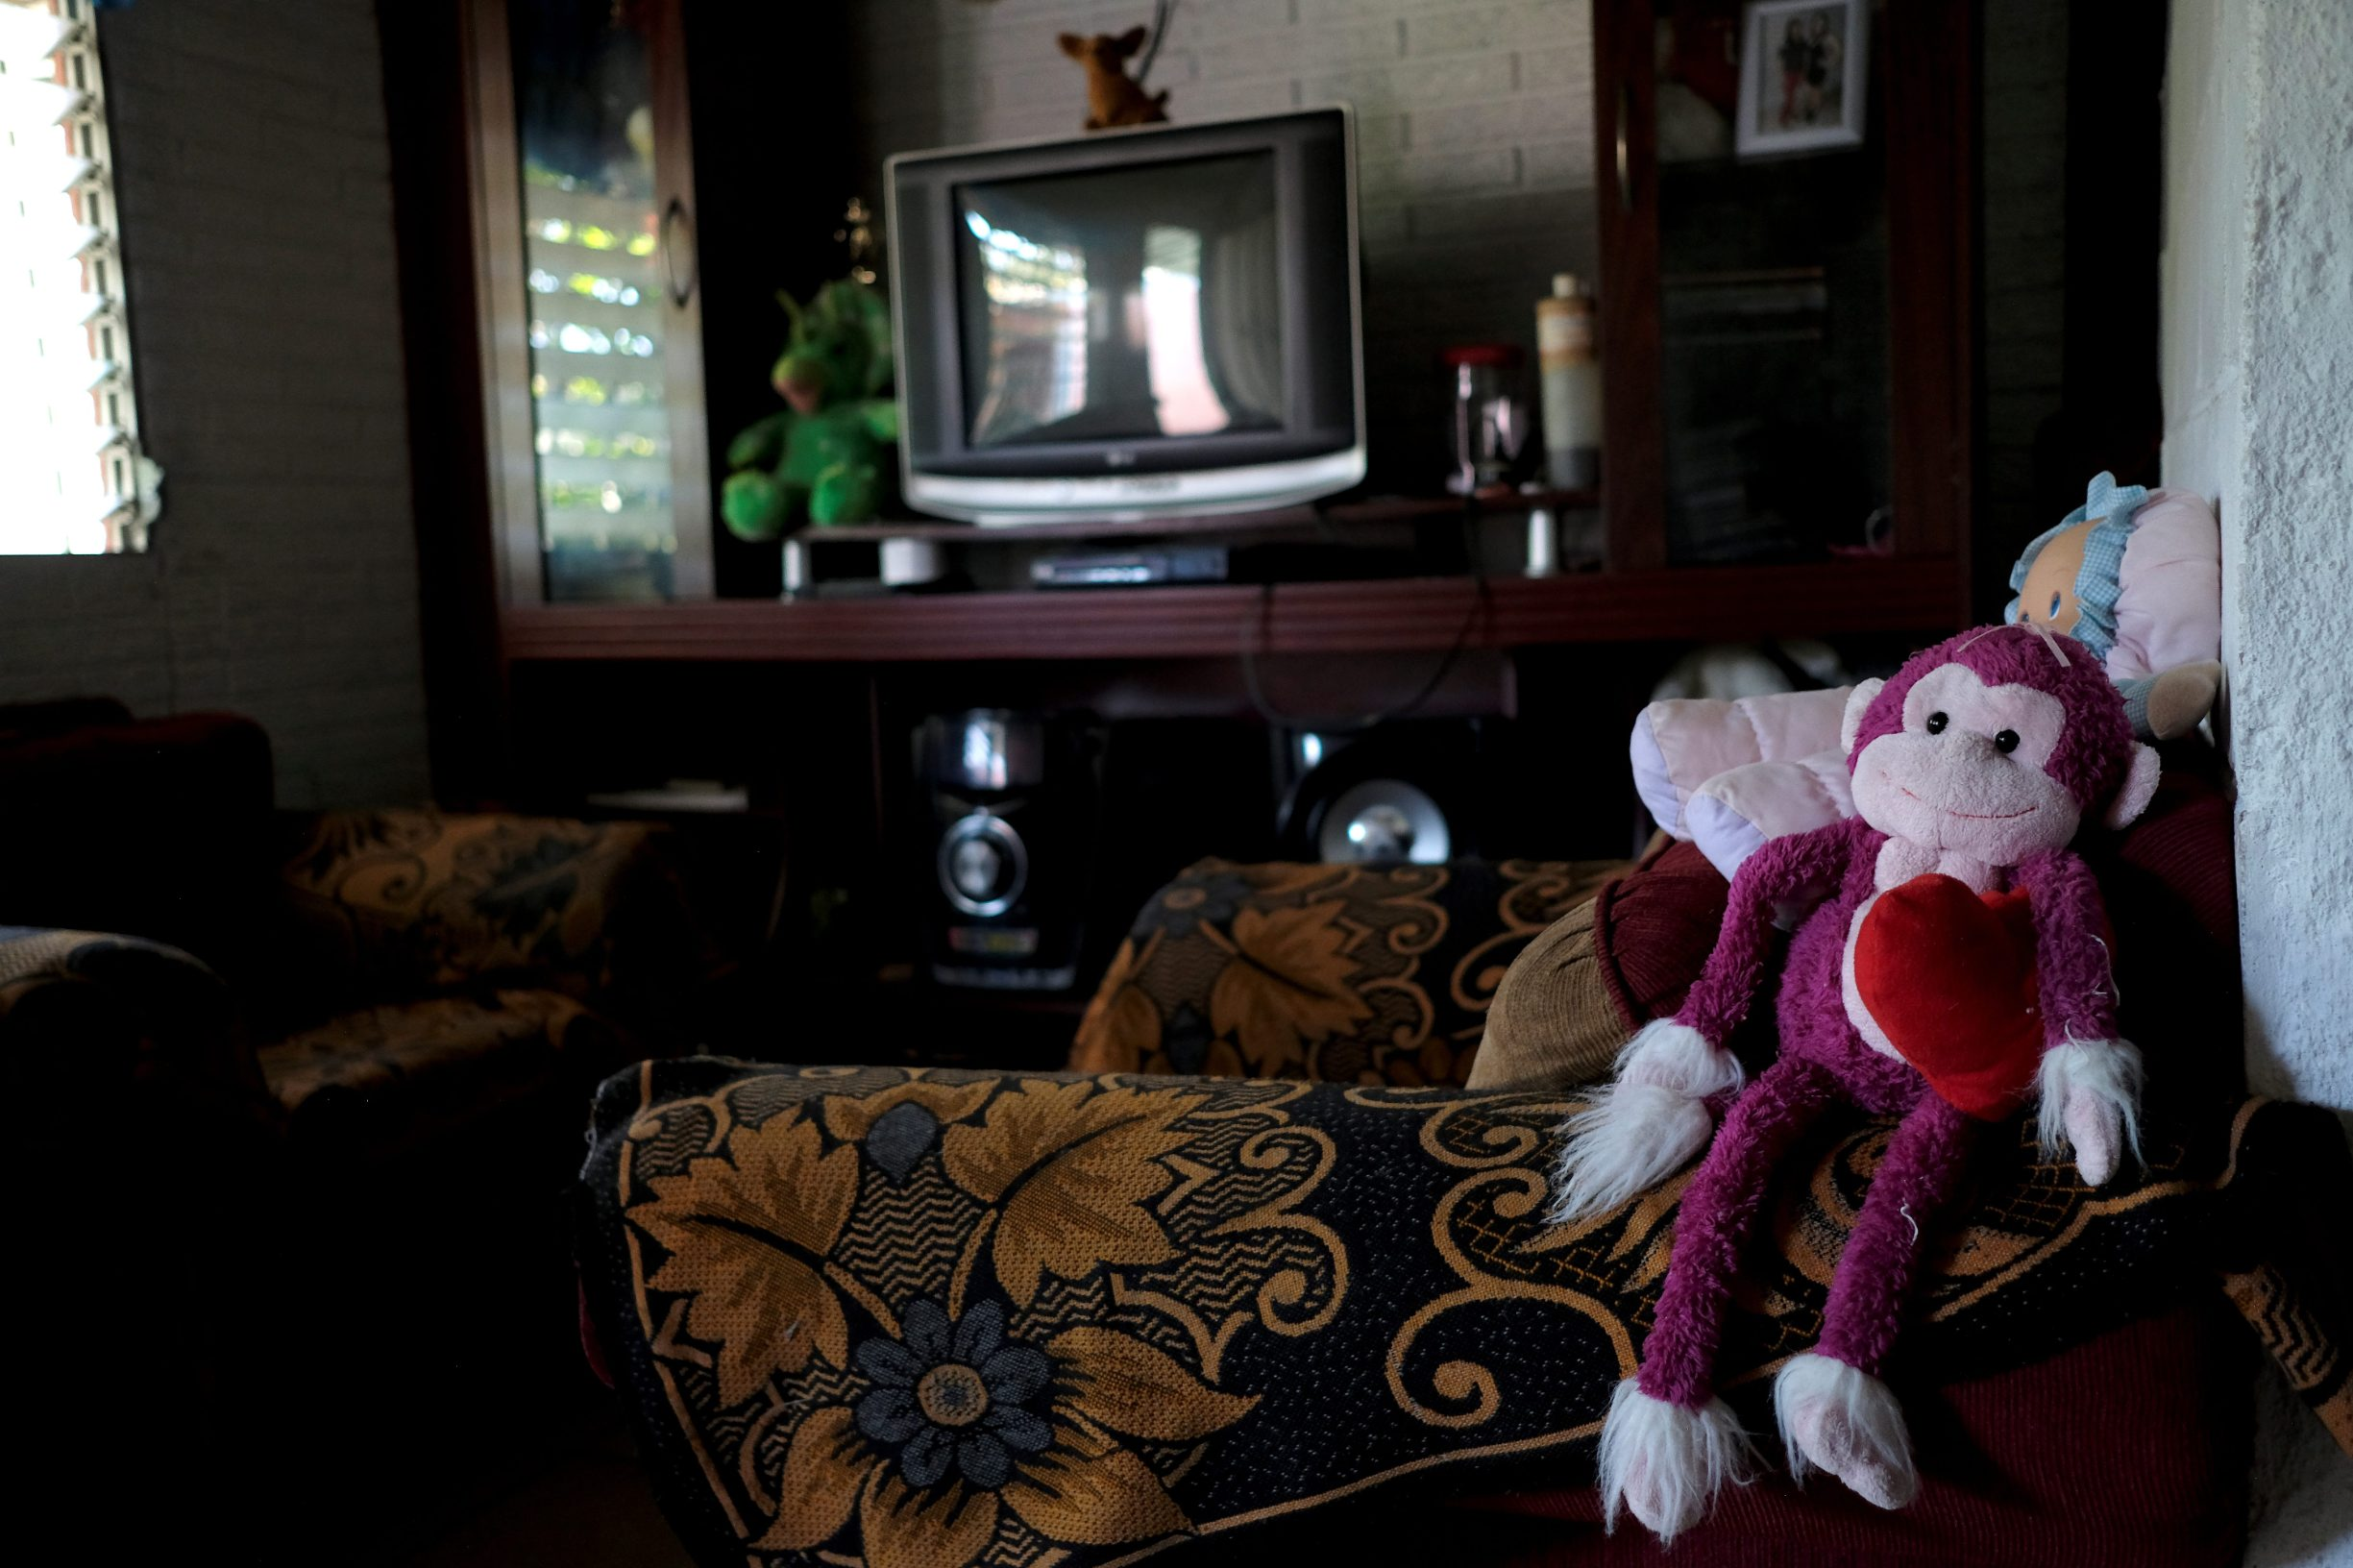 Dolls are pictured at the house of Rosa Ramirez, mother of Oscar Alberto Martinez Ramirez, a migrant who drowned in the Rio Grande River with his daughter Valeria during their journey to the U.S., in the Altavista neighbourhood in San Martin, El Salvador June 26, 2019. REUTERS/Jose Cabezas